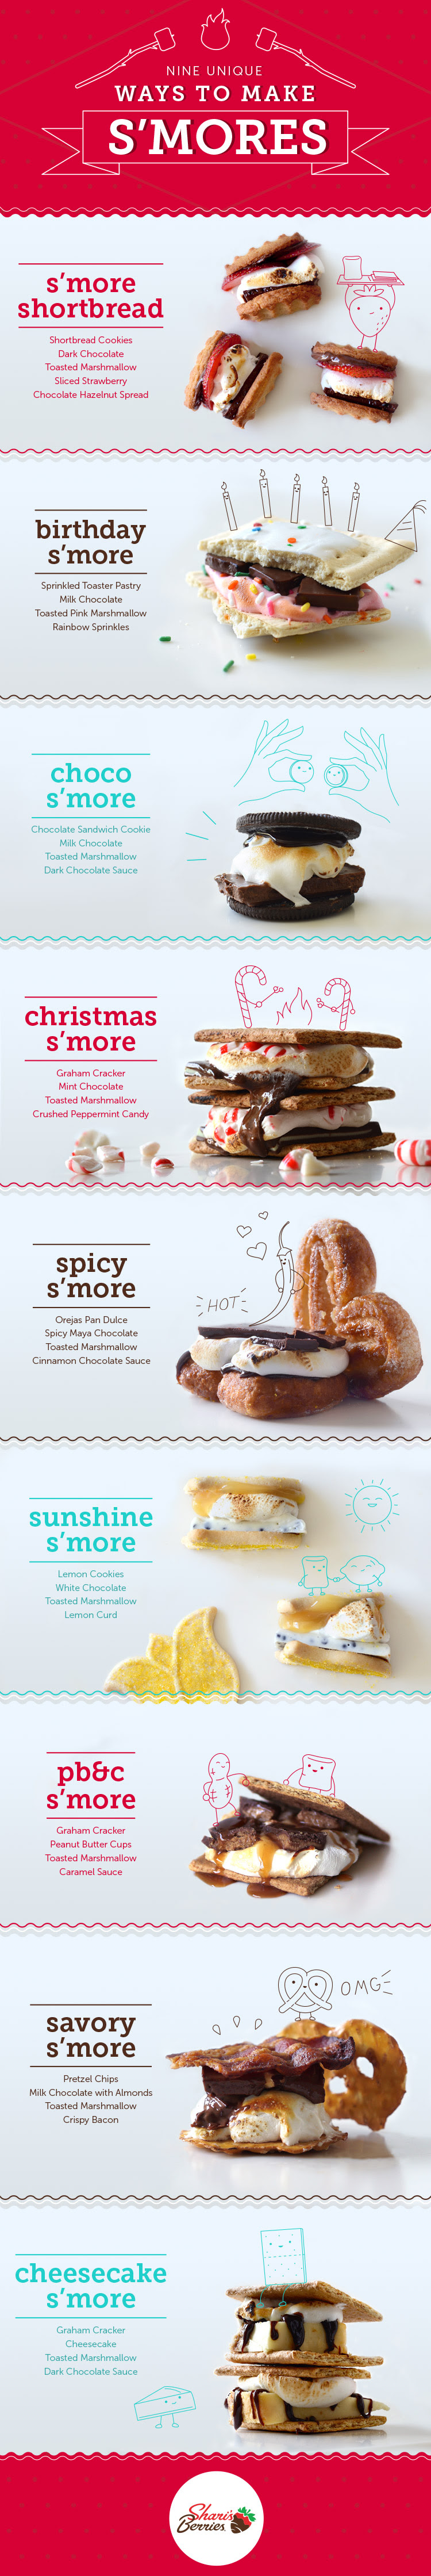 S'More ideas!   Ways to enjoy a S'More (not always the traditional way)